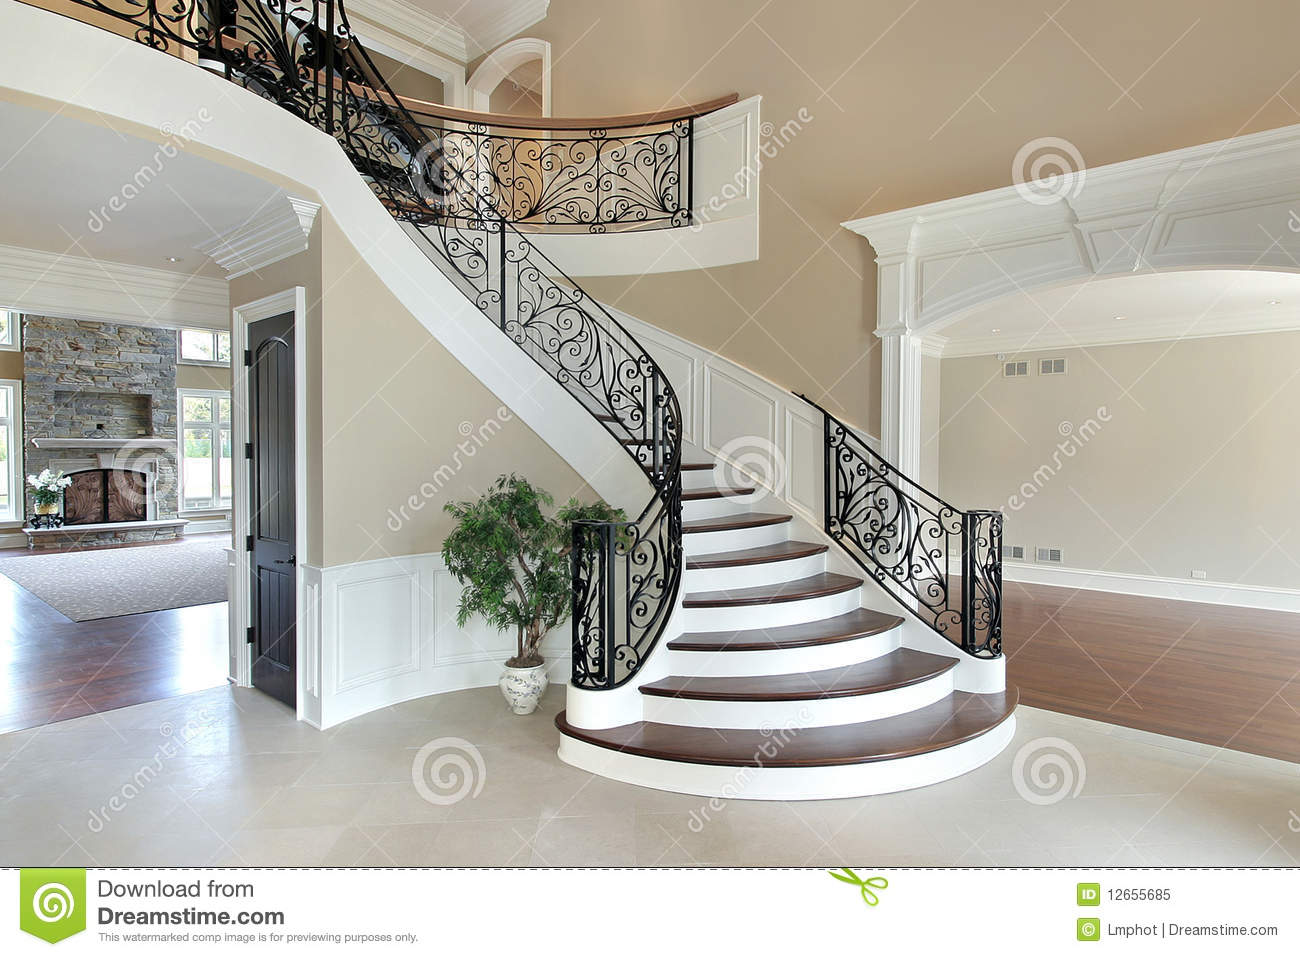 Foyer With Grand Staircase Royalty Free Stock Photo